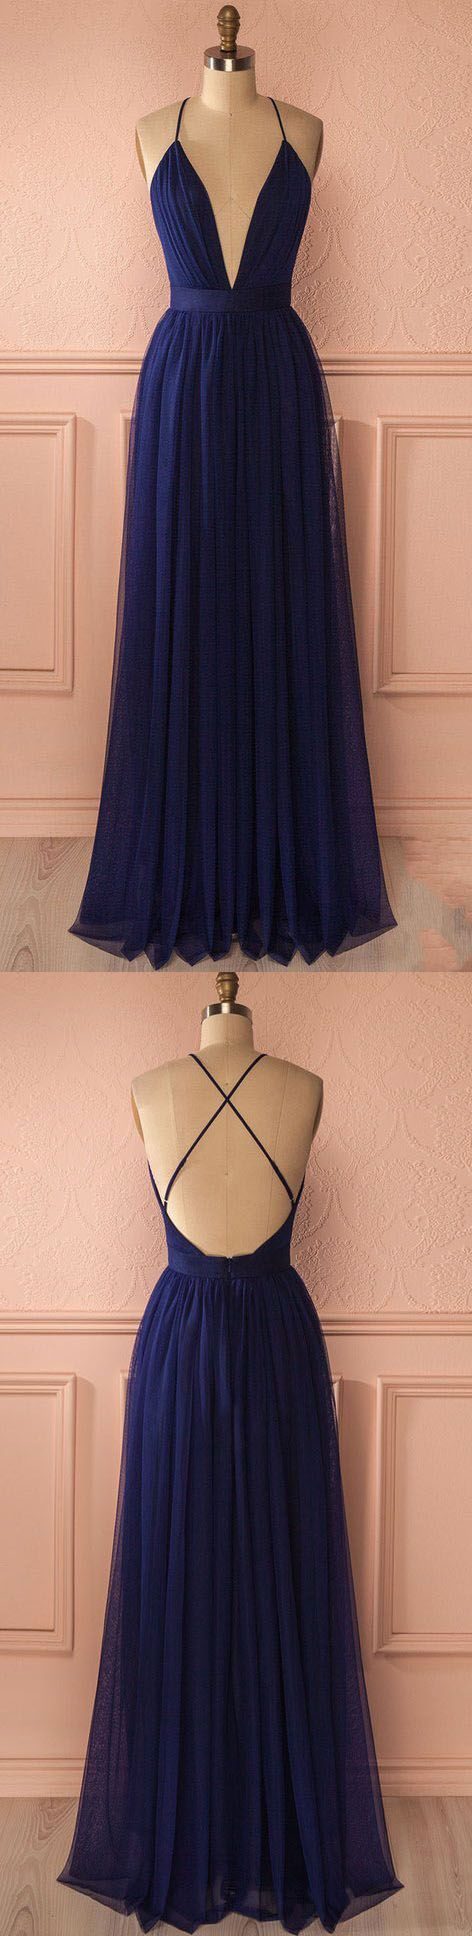 Sexy navy v neck backless prom dress simple long evening dress for